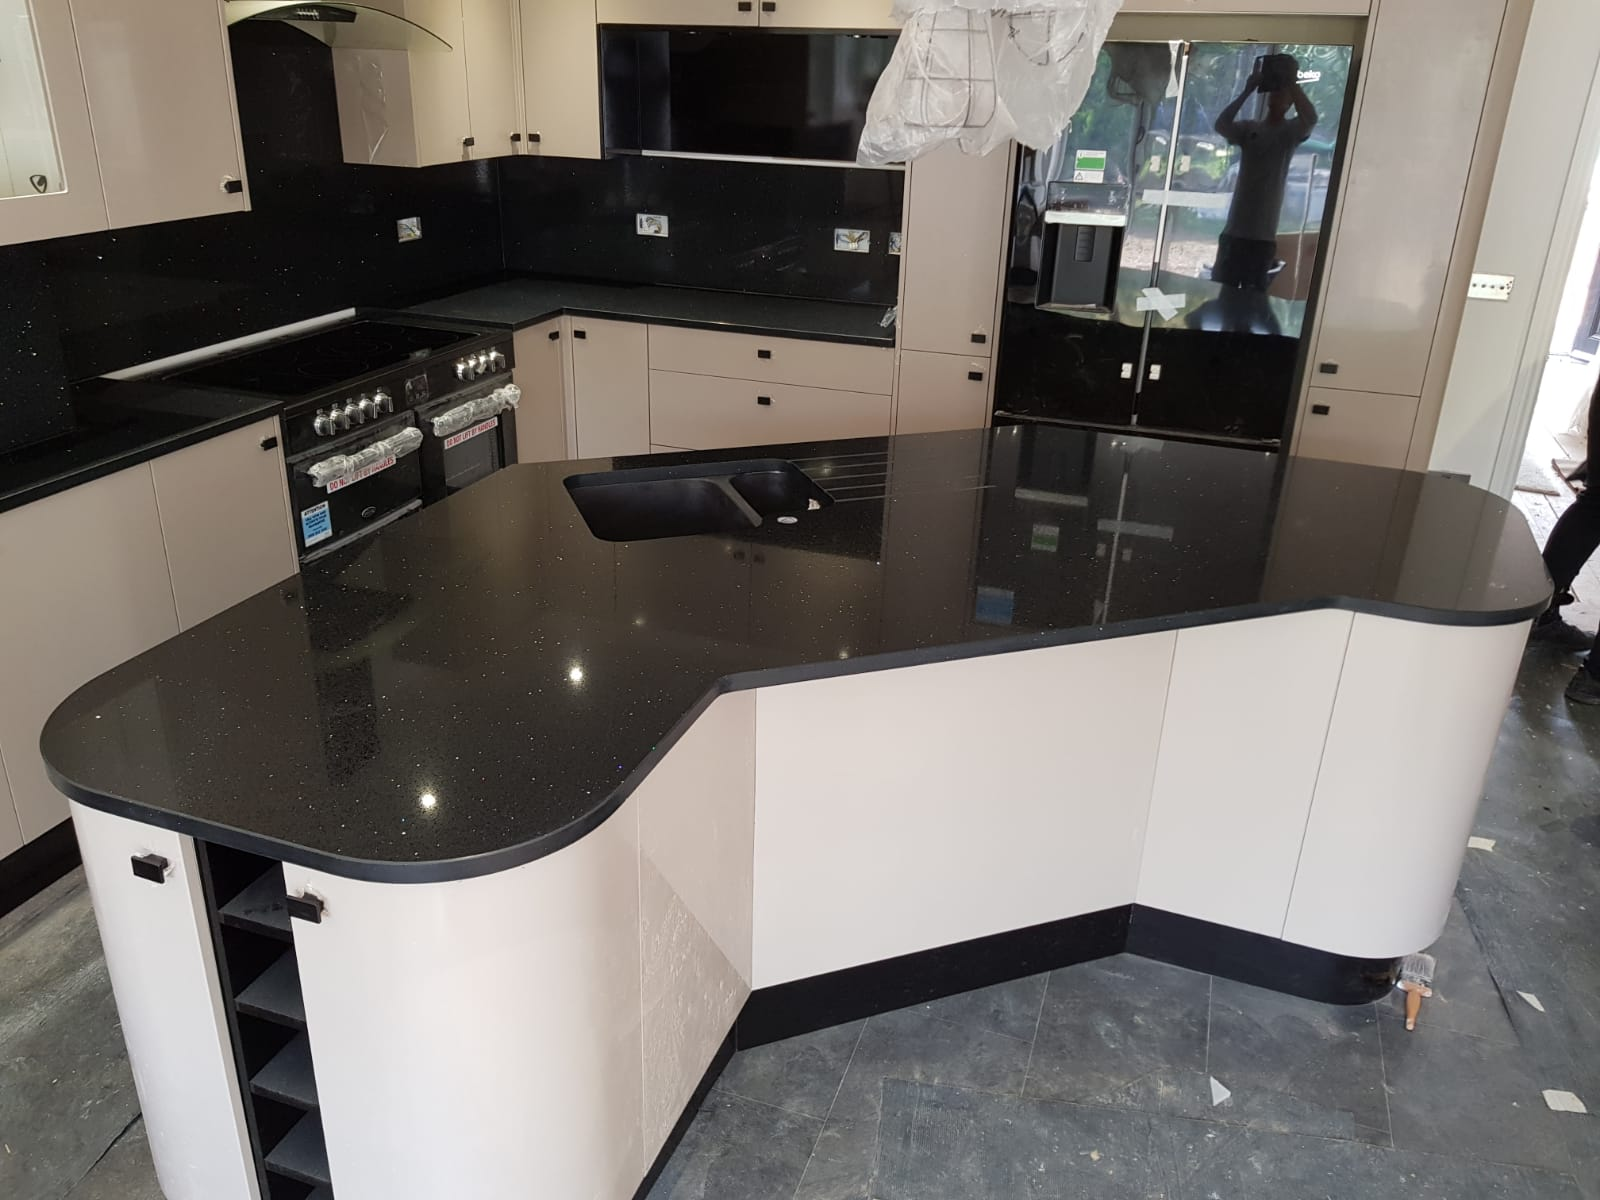 Kitchen of the week… Located in Ware, Herts, showcasing the Nero Stella